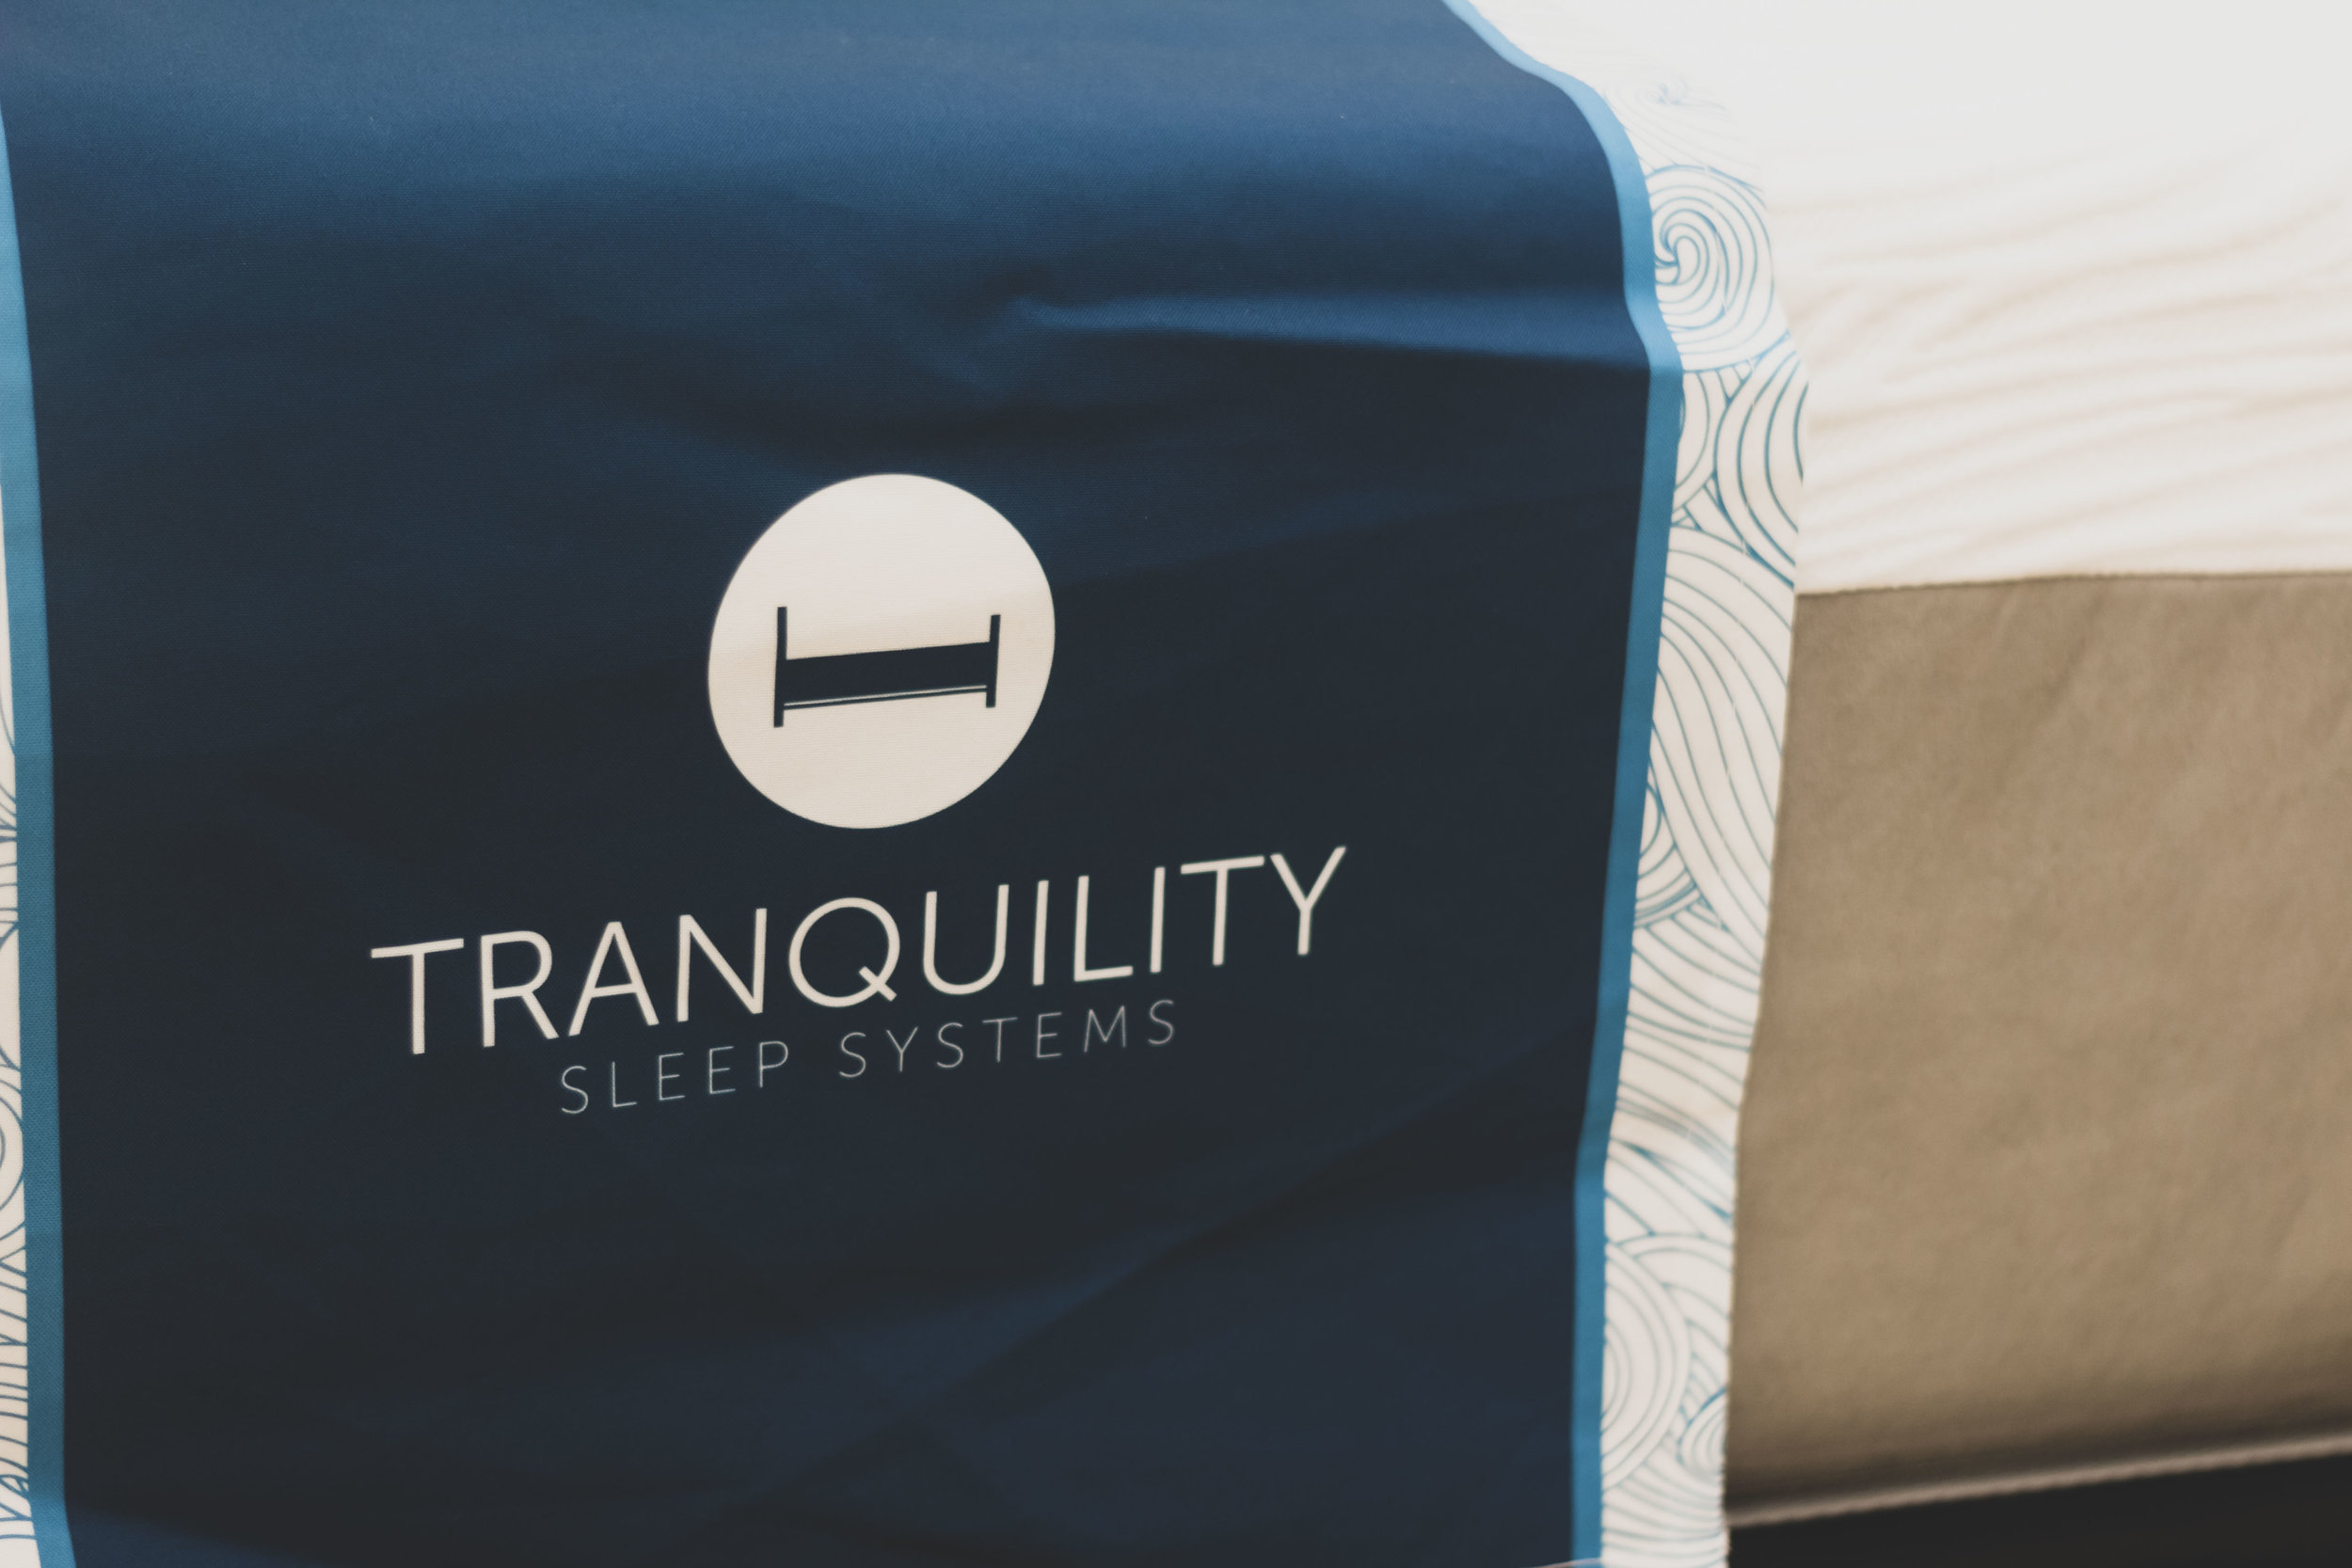 Tranquility Sleep Systems - Tranquility is an American made manufacturer of mattresses, differentiated by master craftsmanship, a wholly owned state-of-the art manufacturing facility and exceptional customer service. Family owned since 1995.